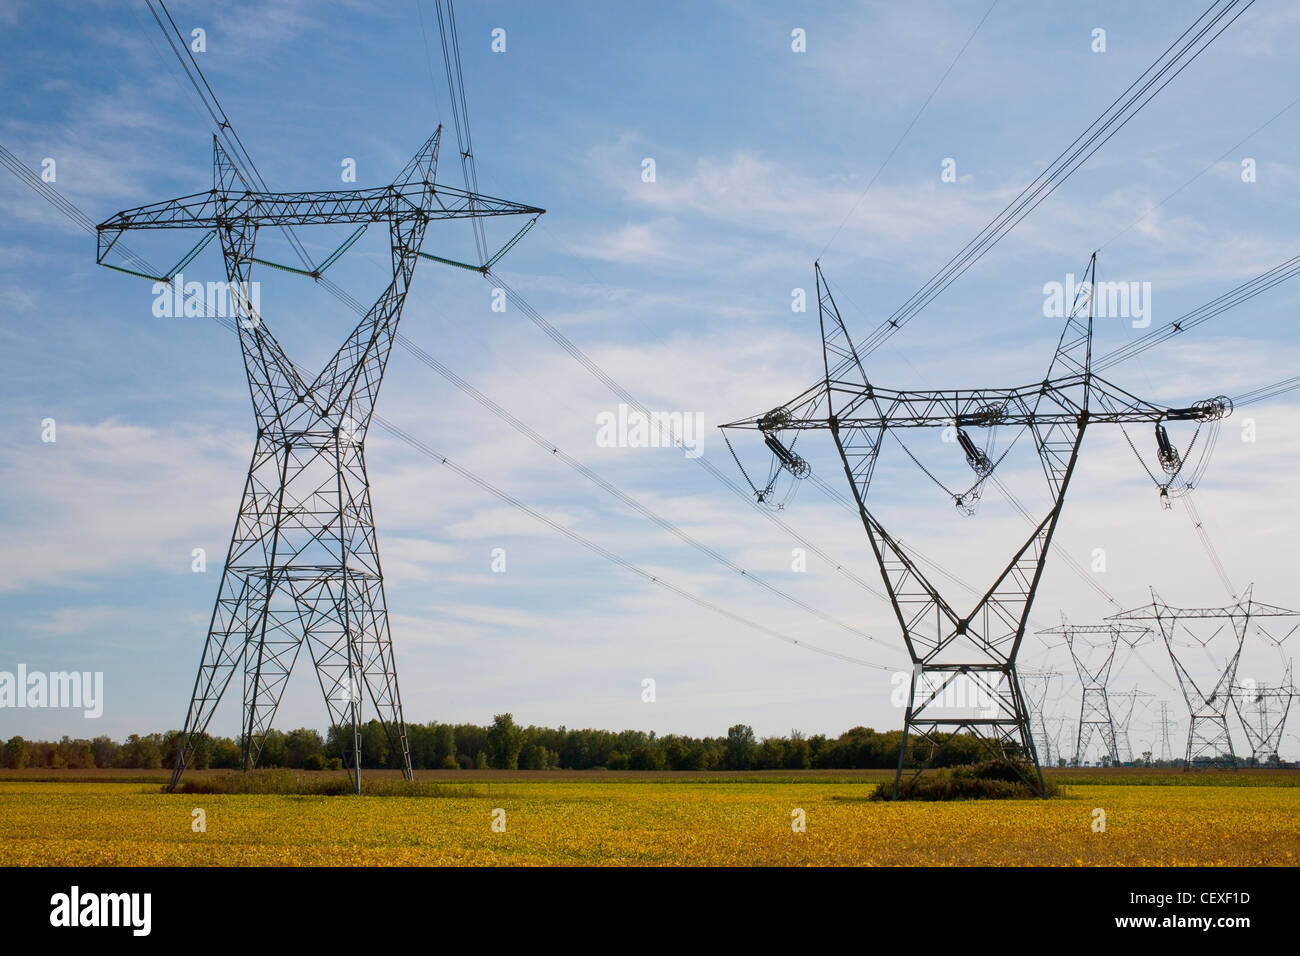 power transmission towers and lines; boucherville, quebec, canada - Stock Image